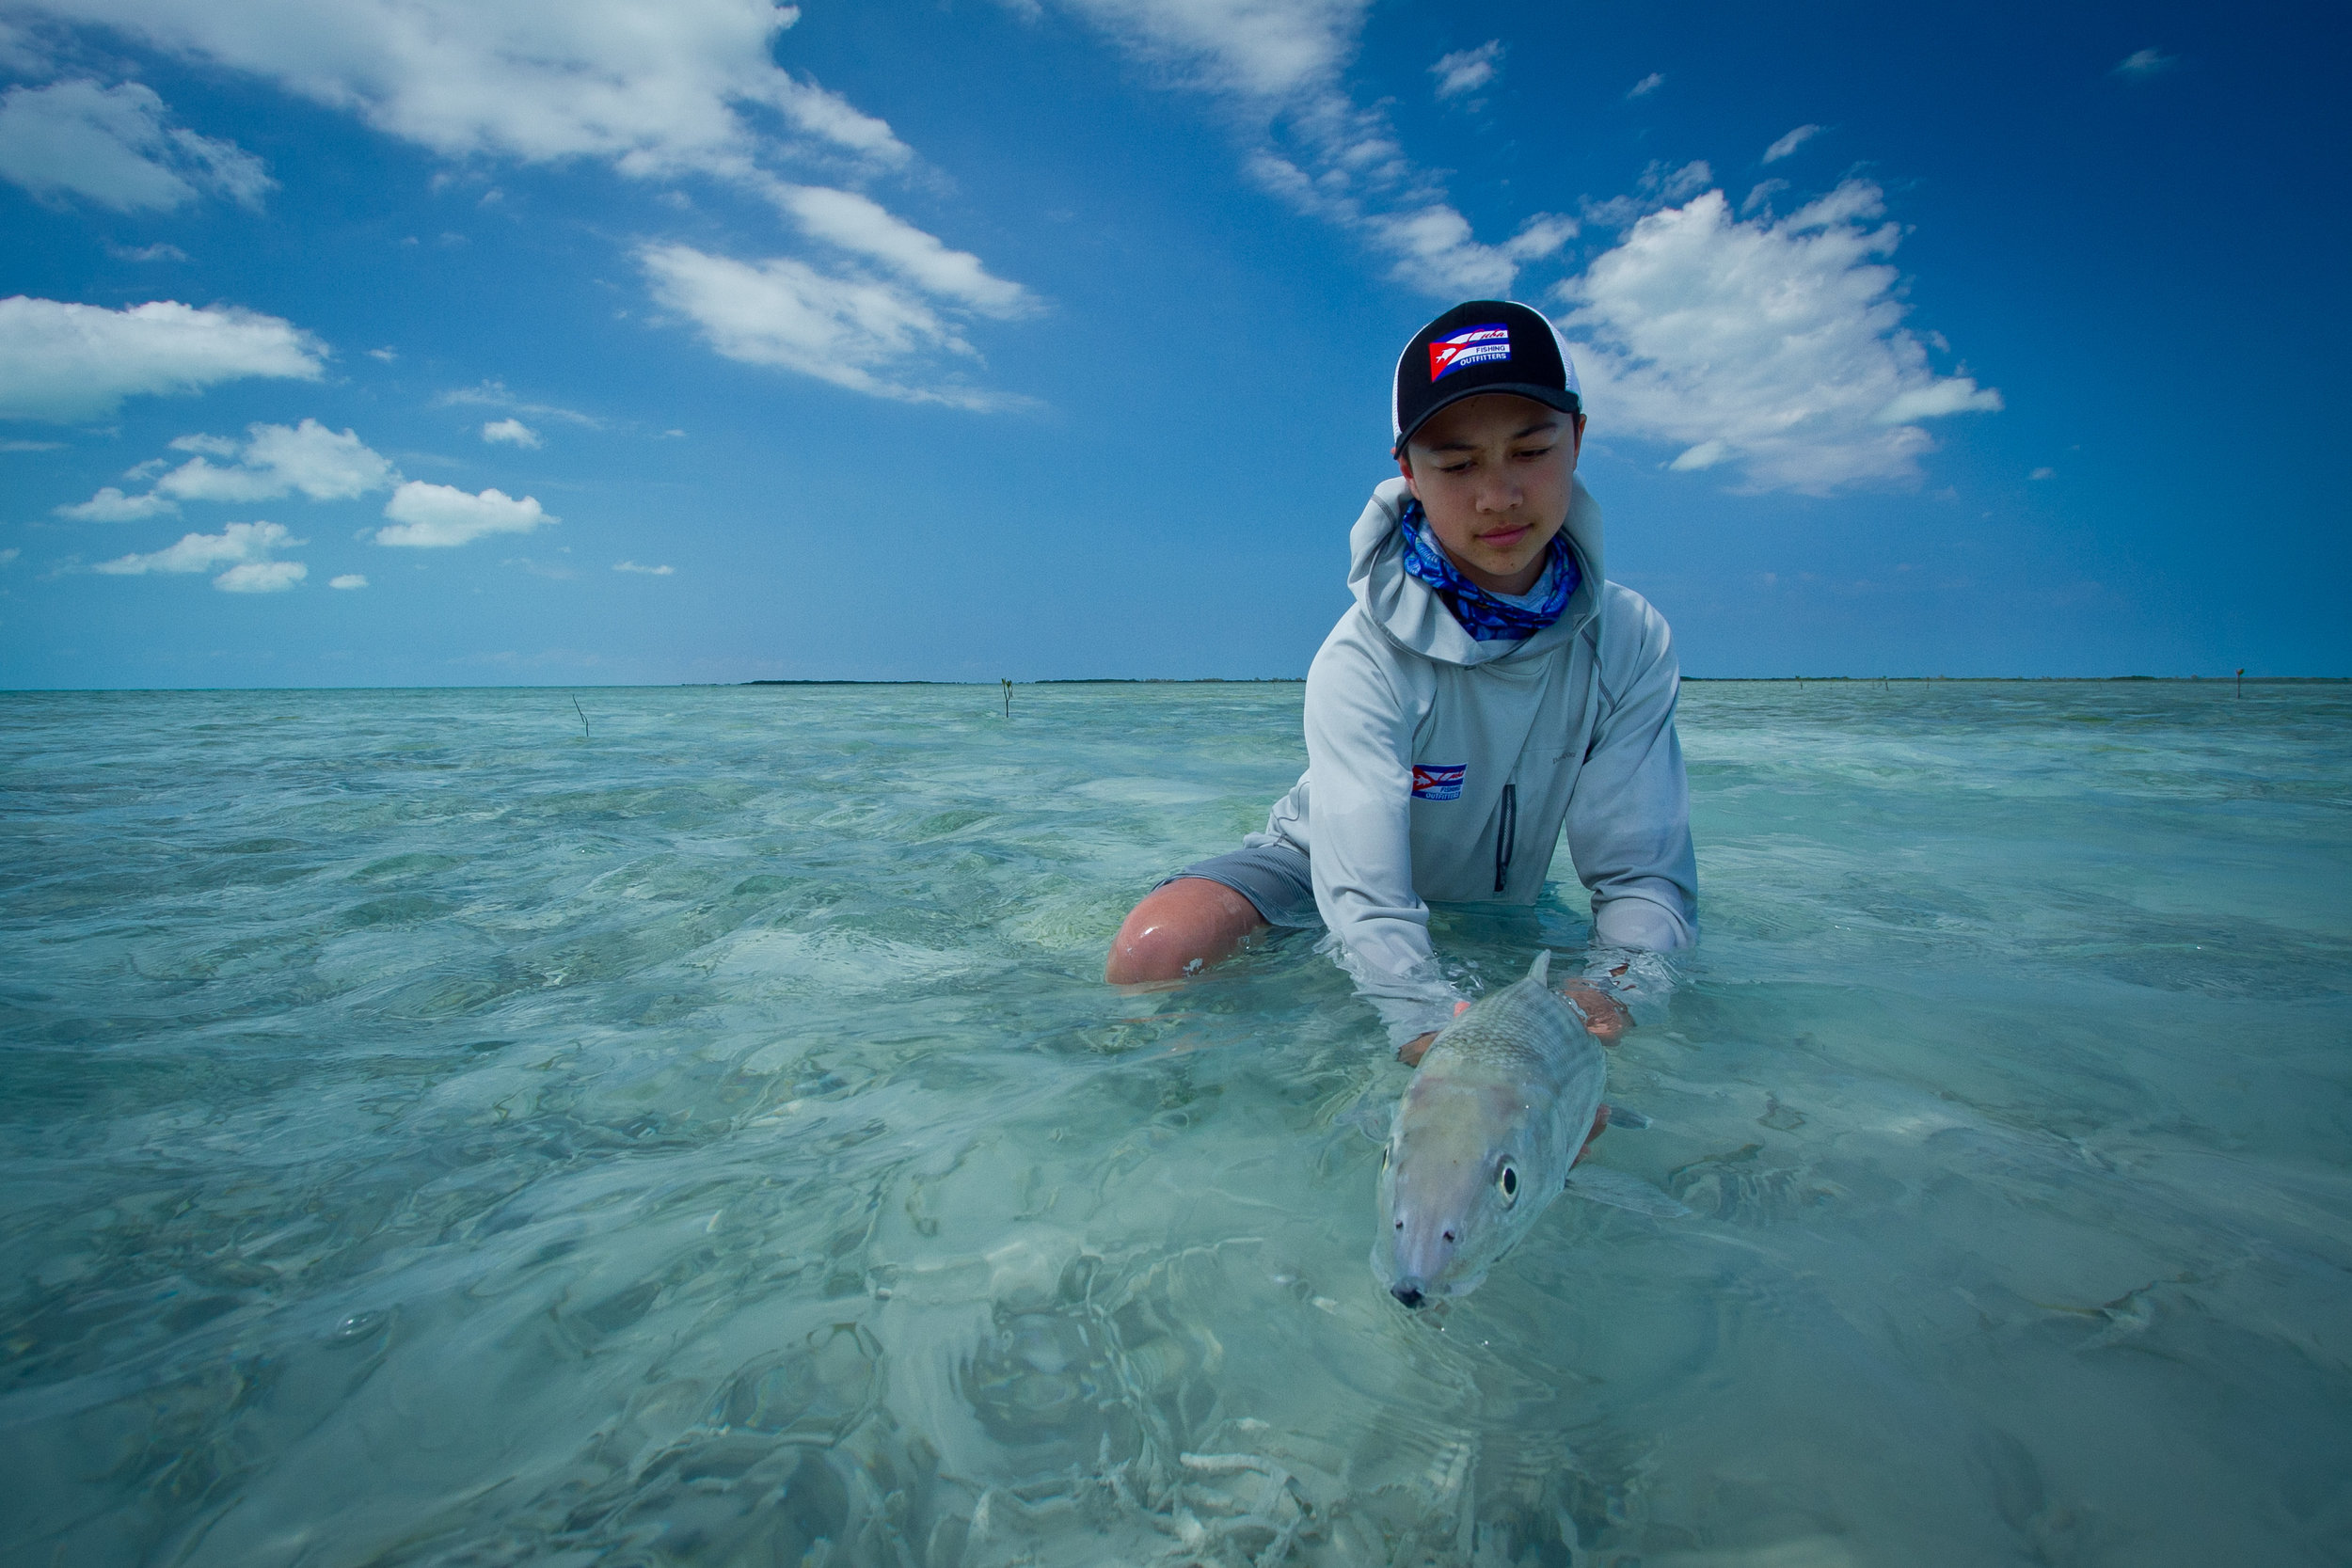 Fly Fishing for Bonefish, Cayo Cruz, Cuba